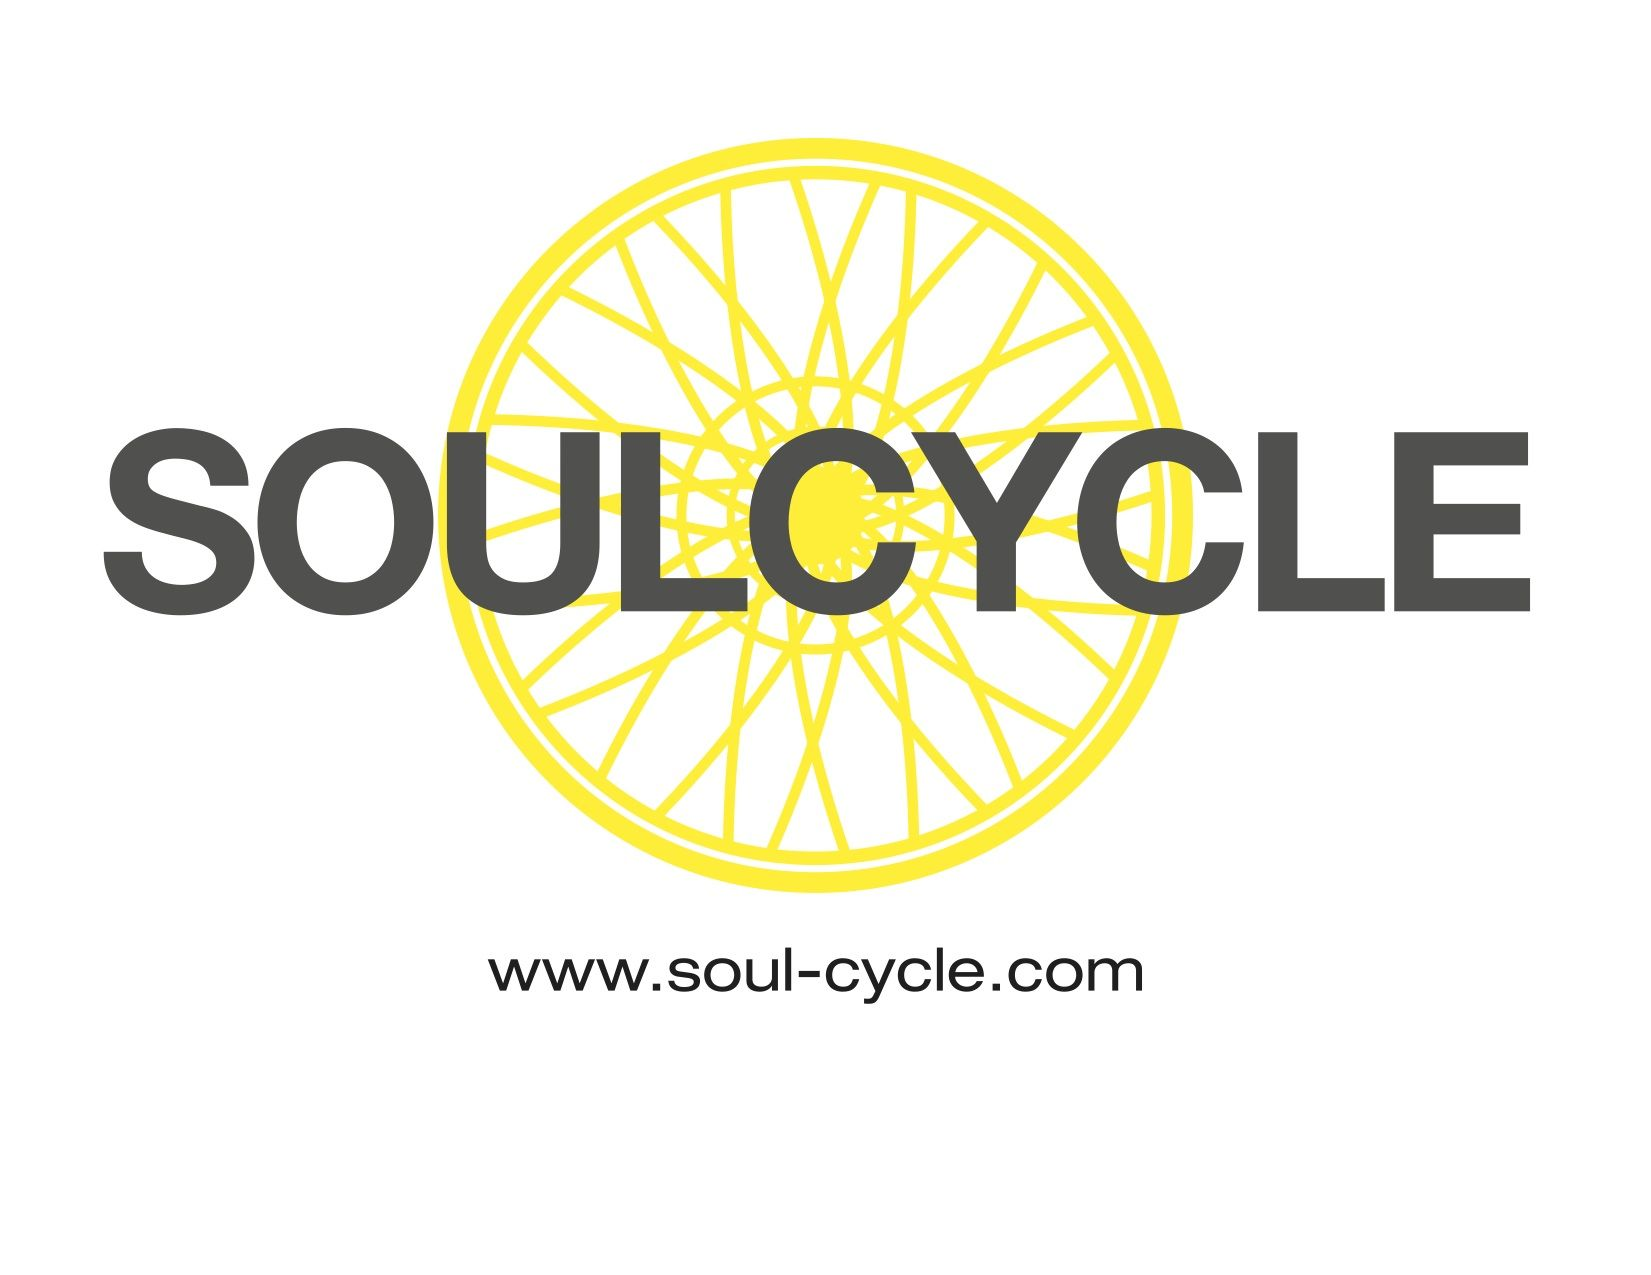 Gifts for Soulcycle lovers.